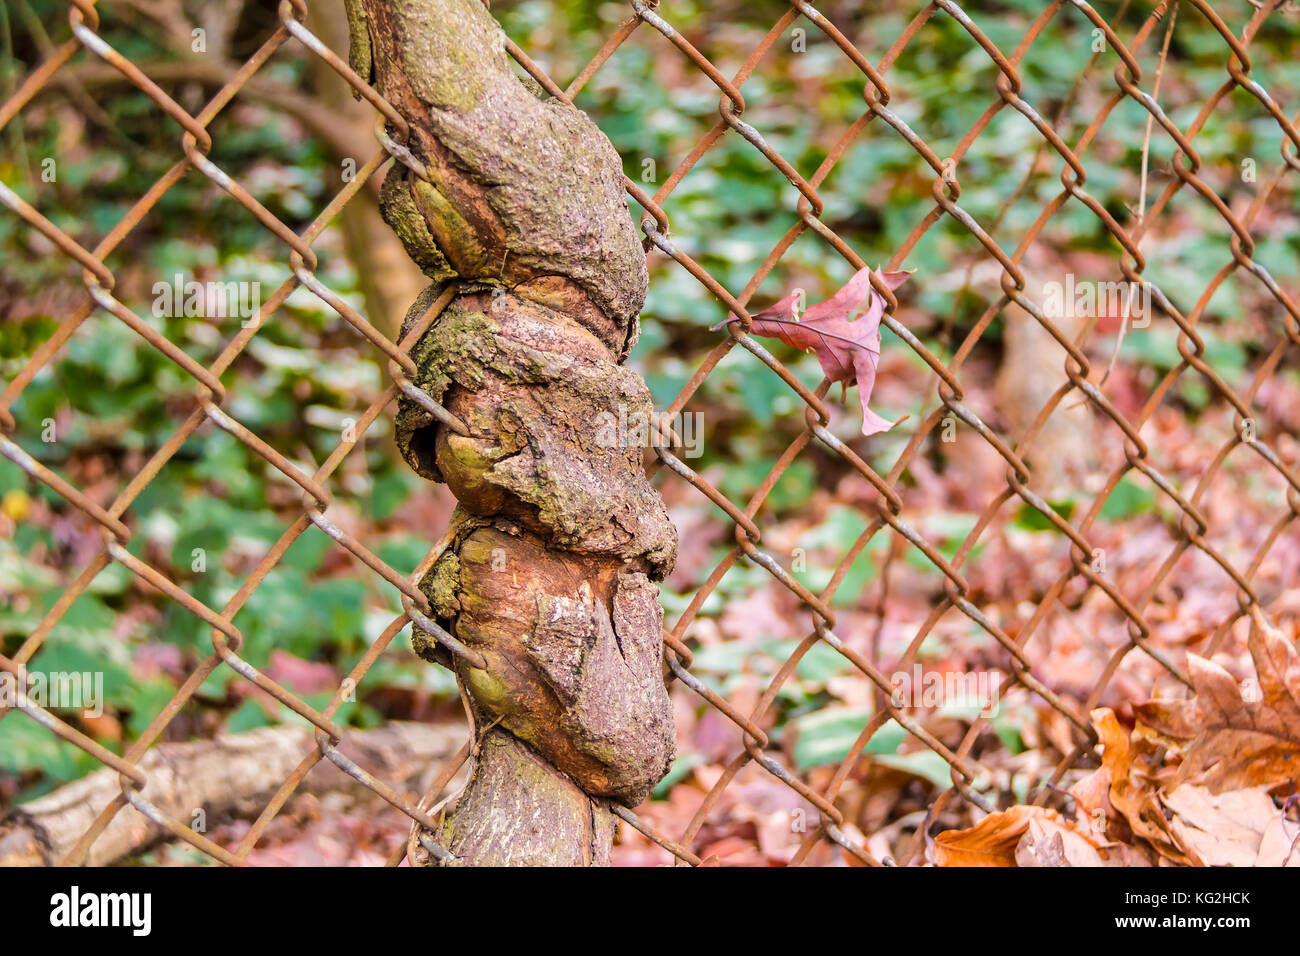 The trunk of the tree spouted through wire grid closeup Stock Photo